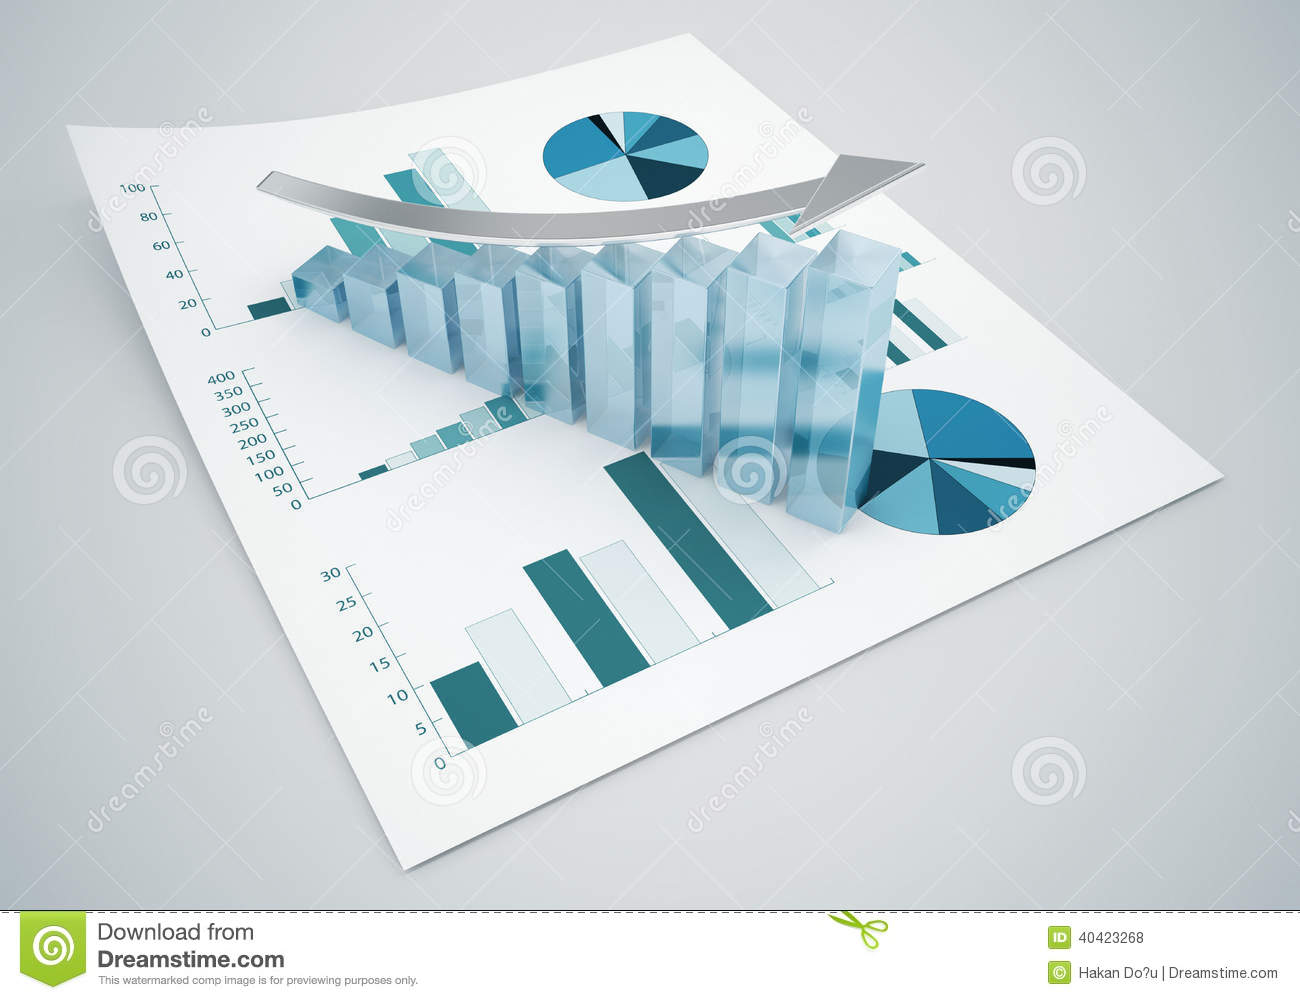 business finance graphics stock illustration illustration of achievement 40423268 dreamstime com